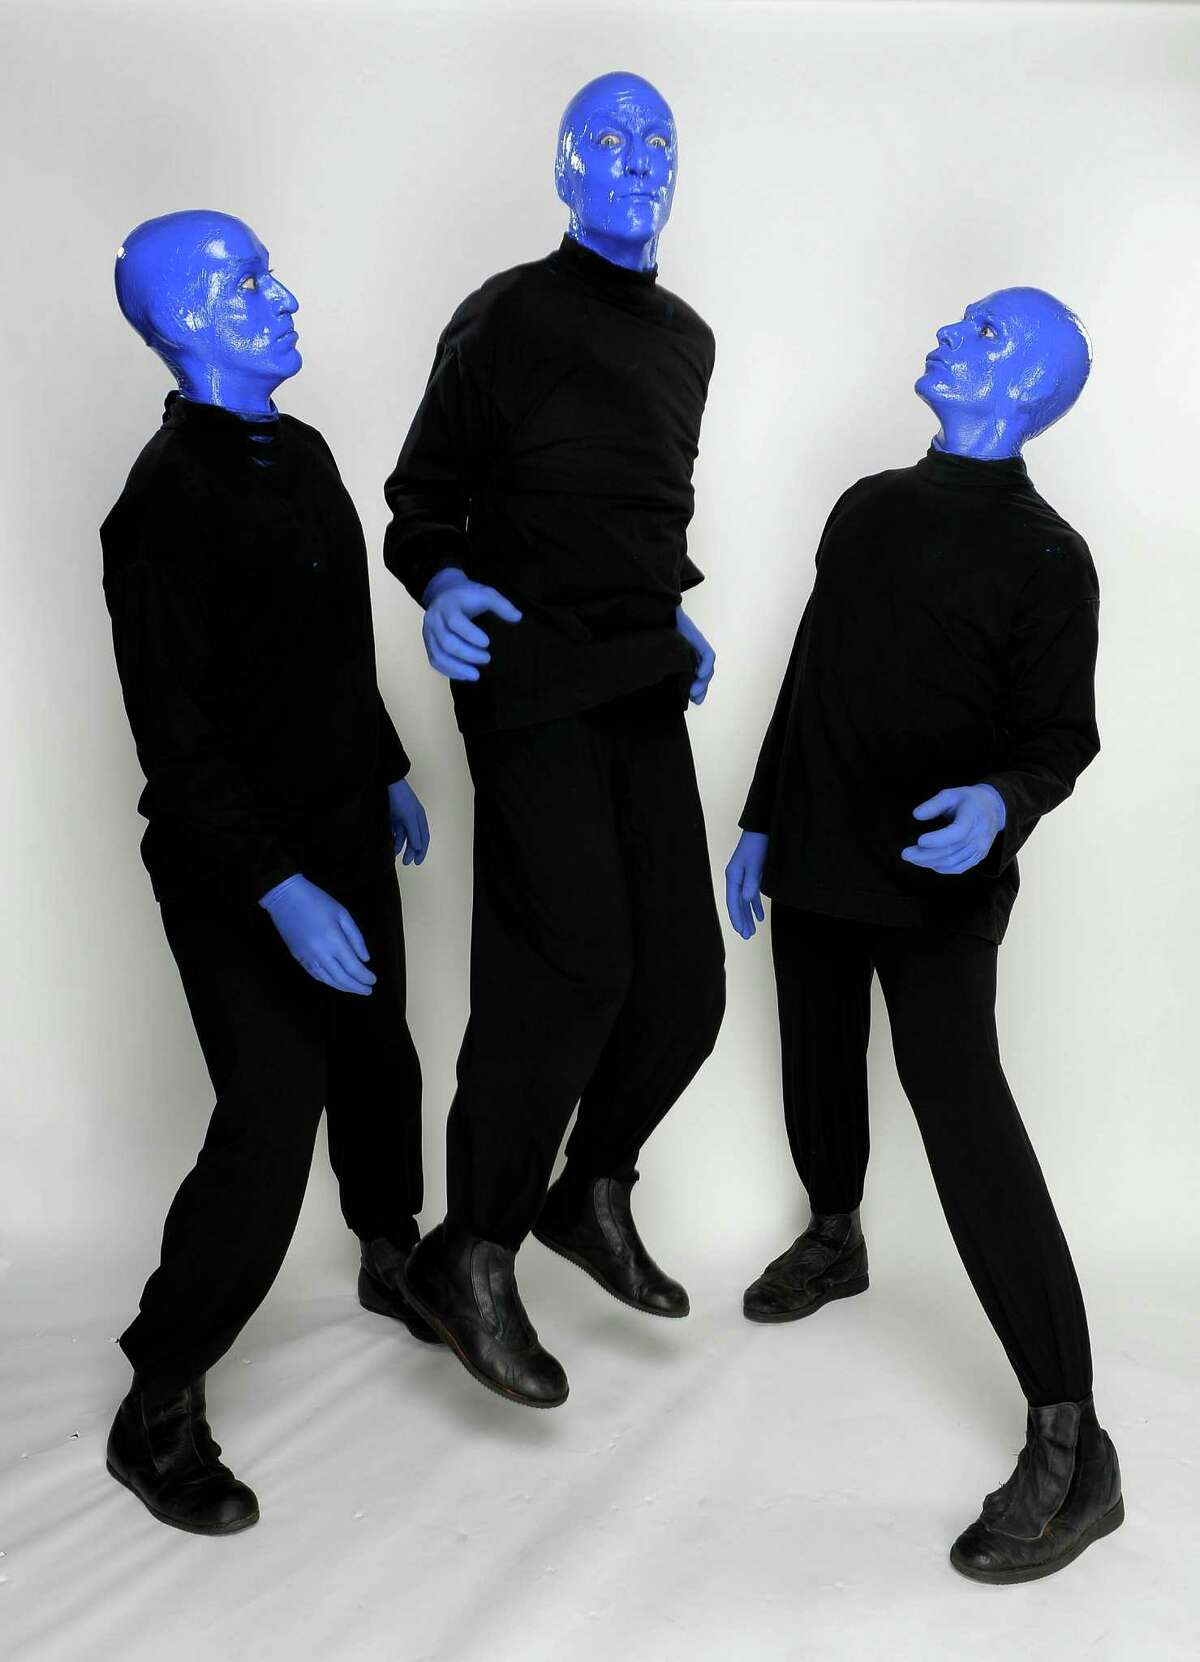 The Blue Man Group (Photo by Charley Gallay/Getty Images)